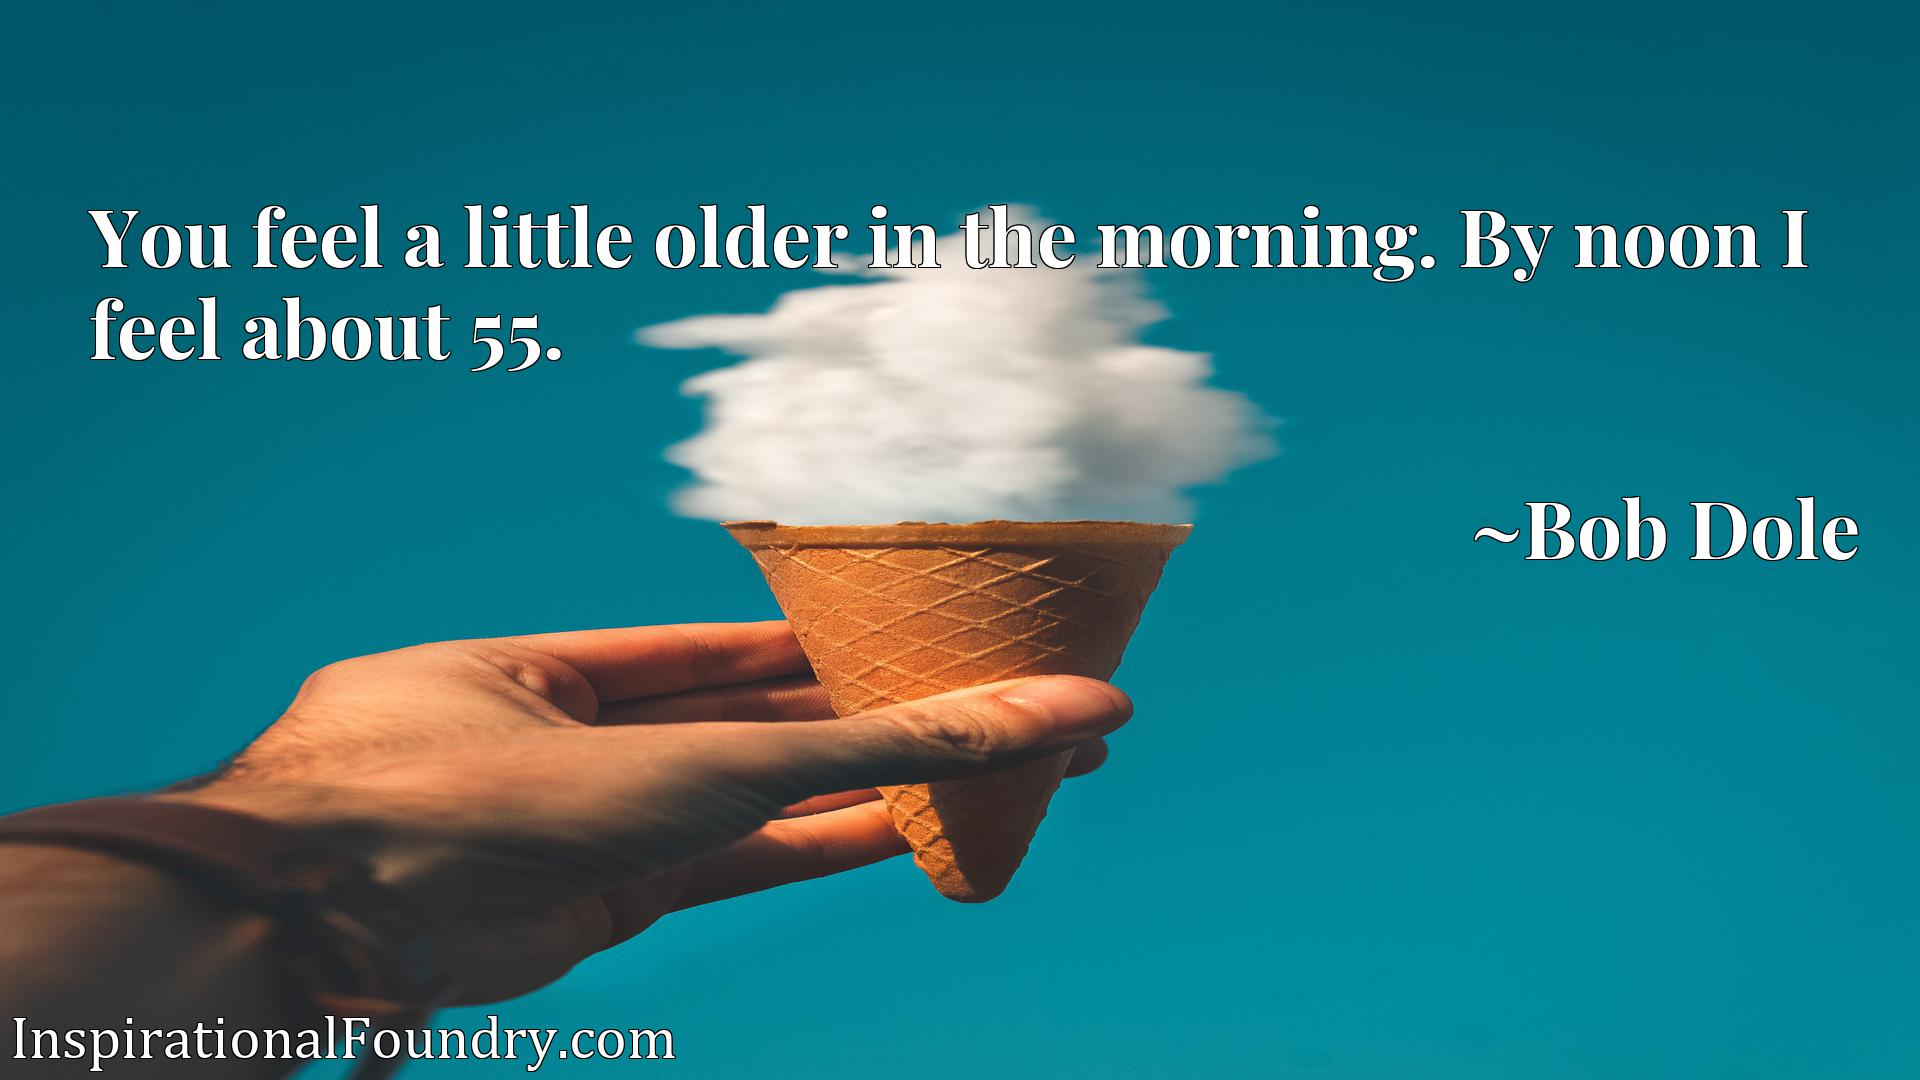 You feel a little older in the morning. By noon I feel about 55.